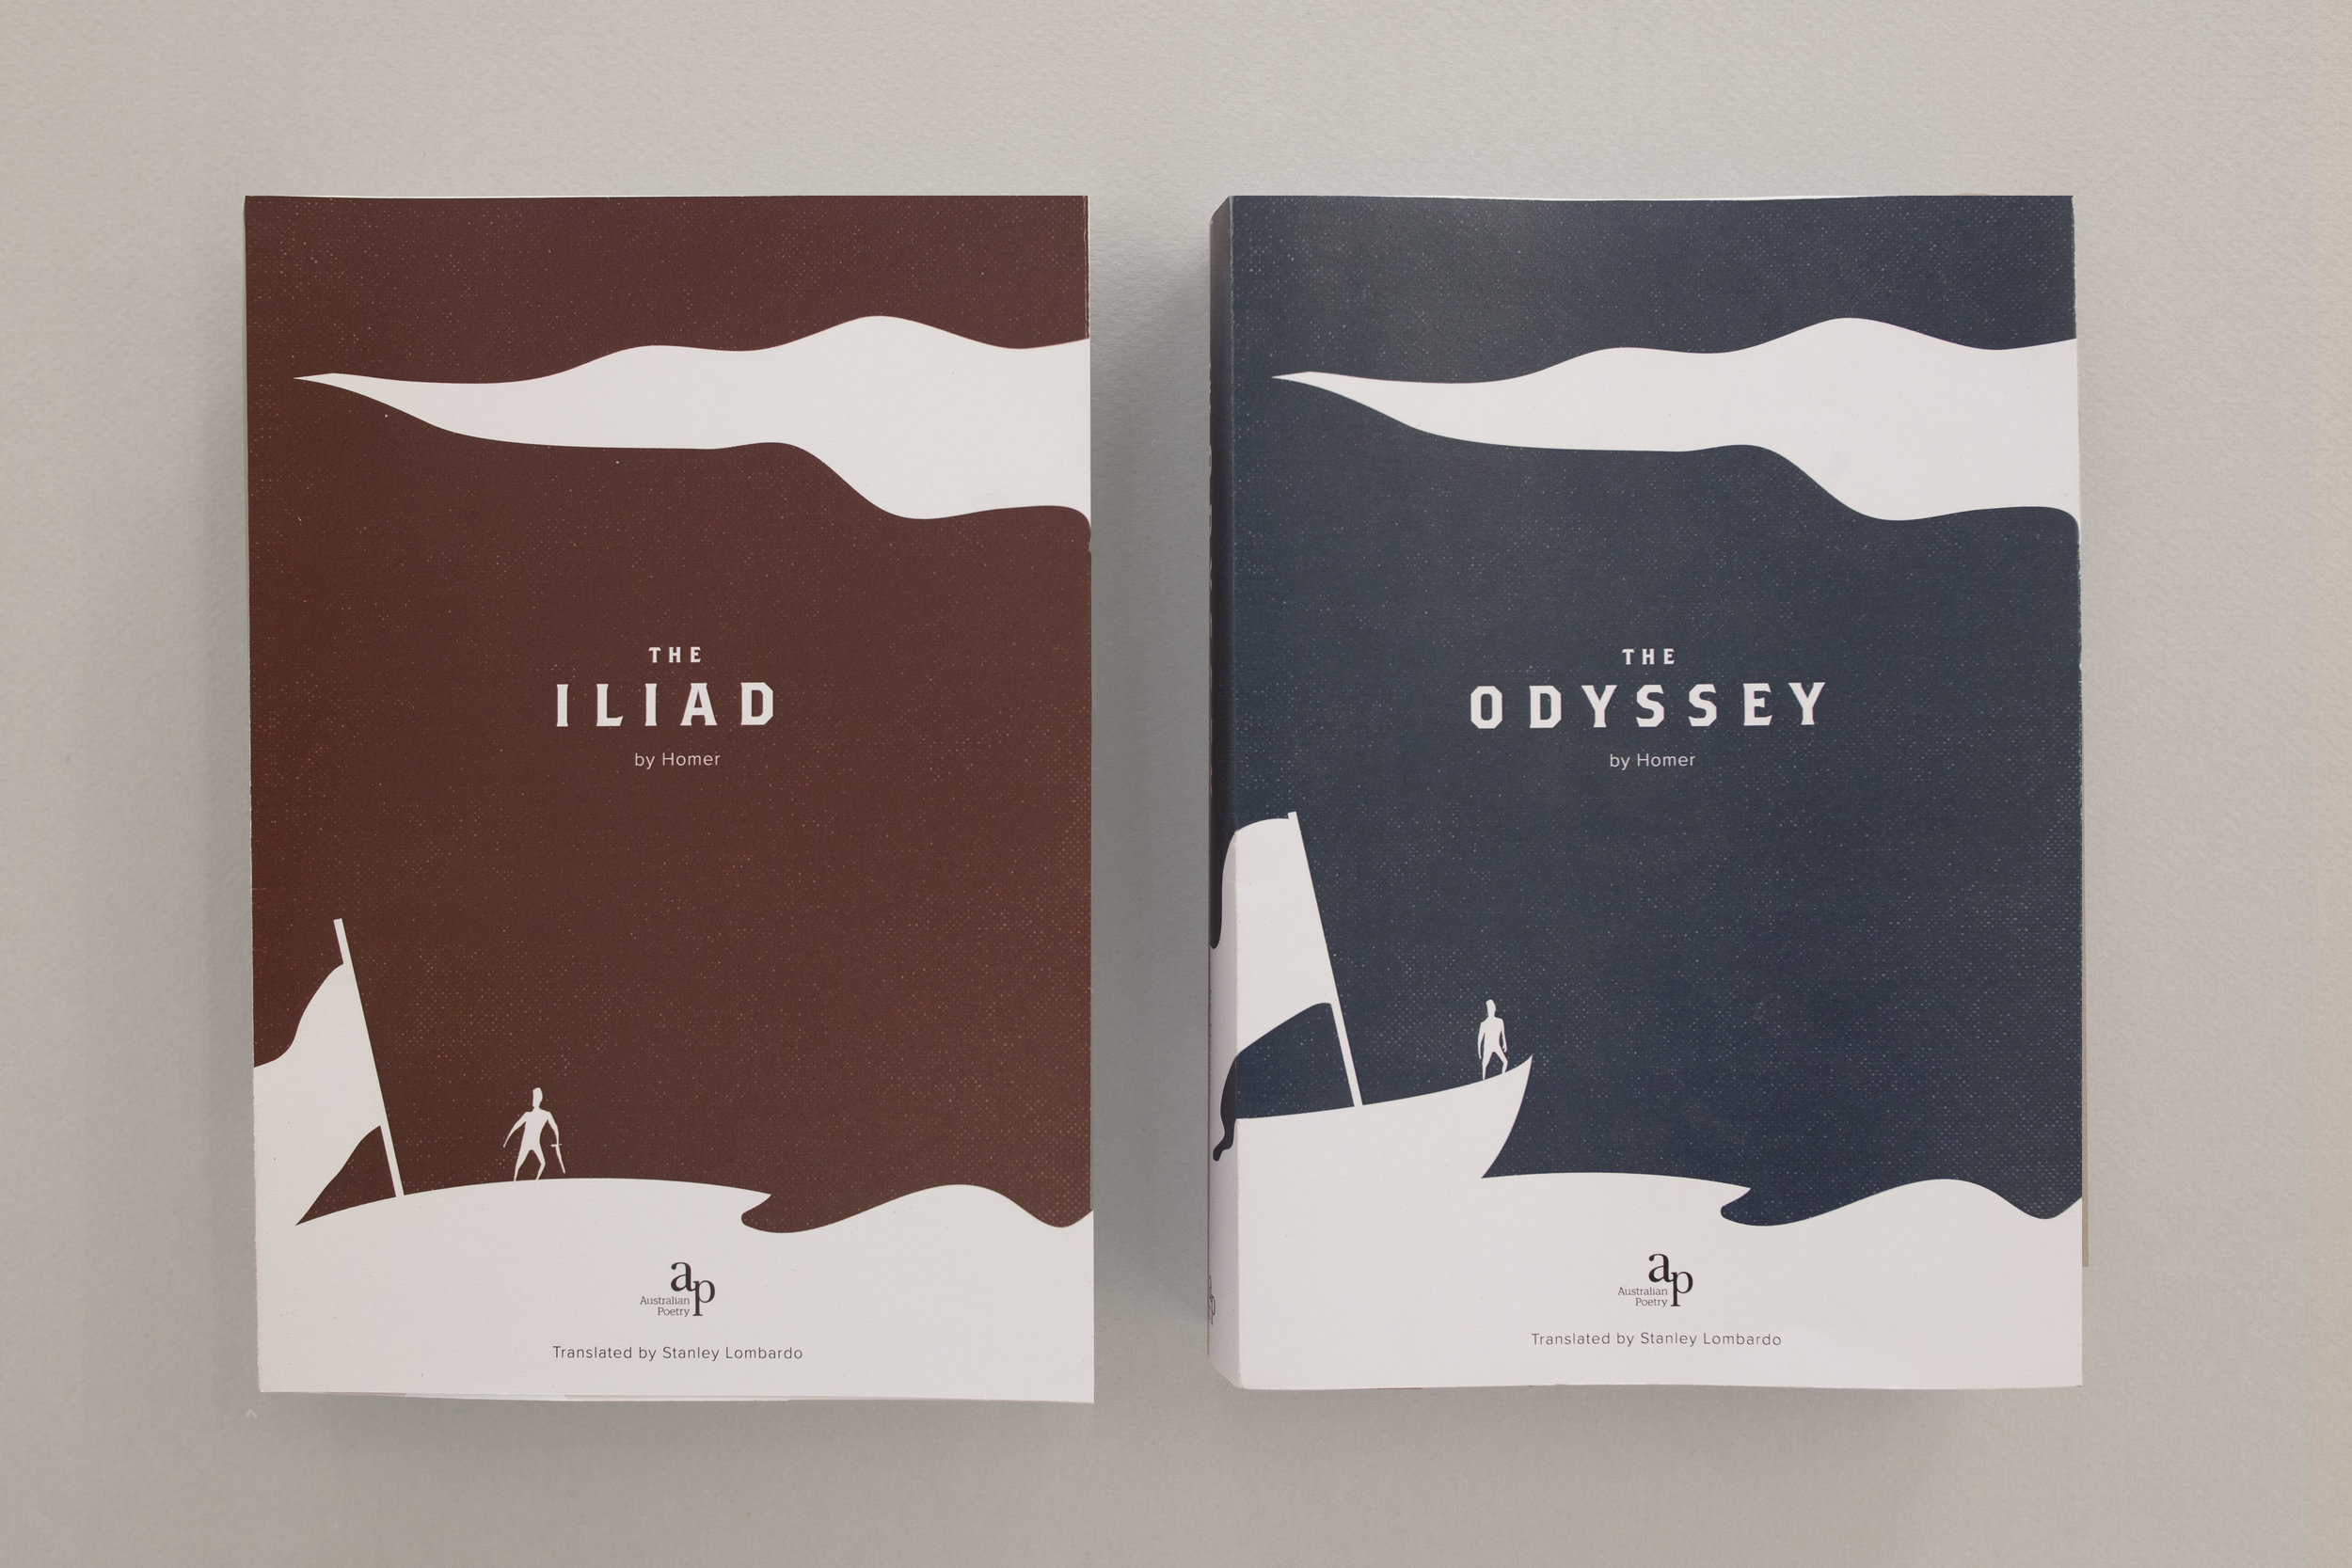 16010_Odyssey_Covers-Recovered.jpg